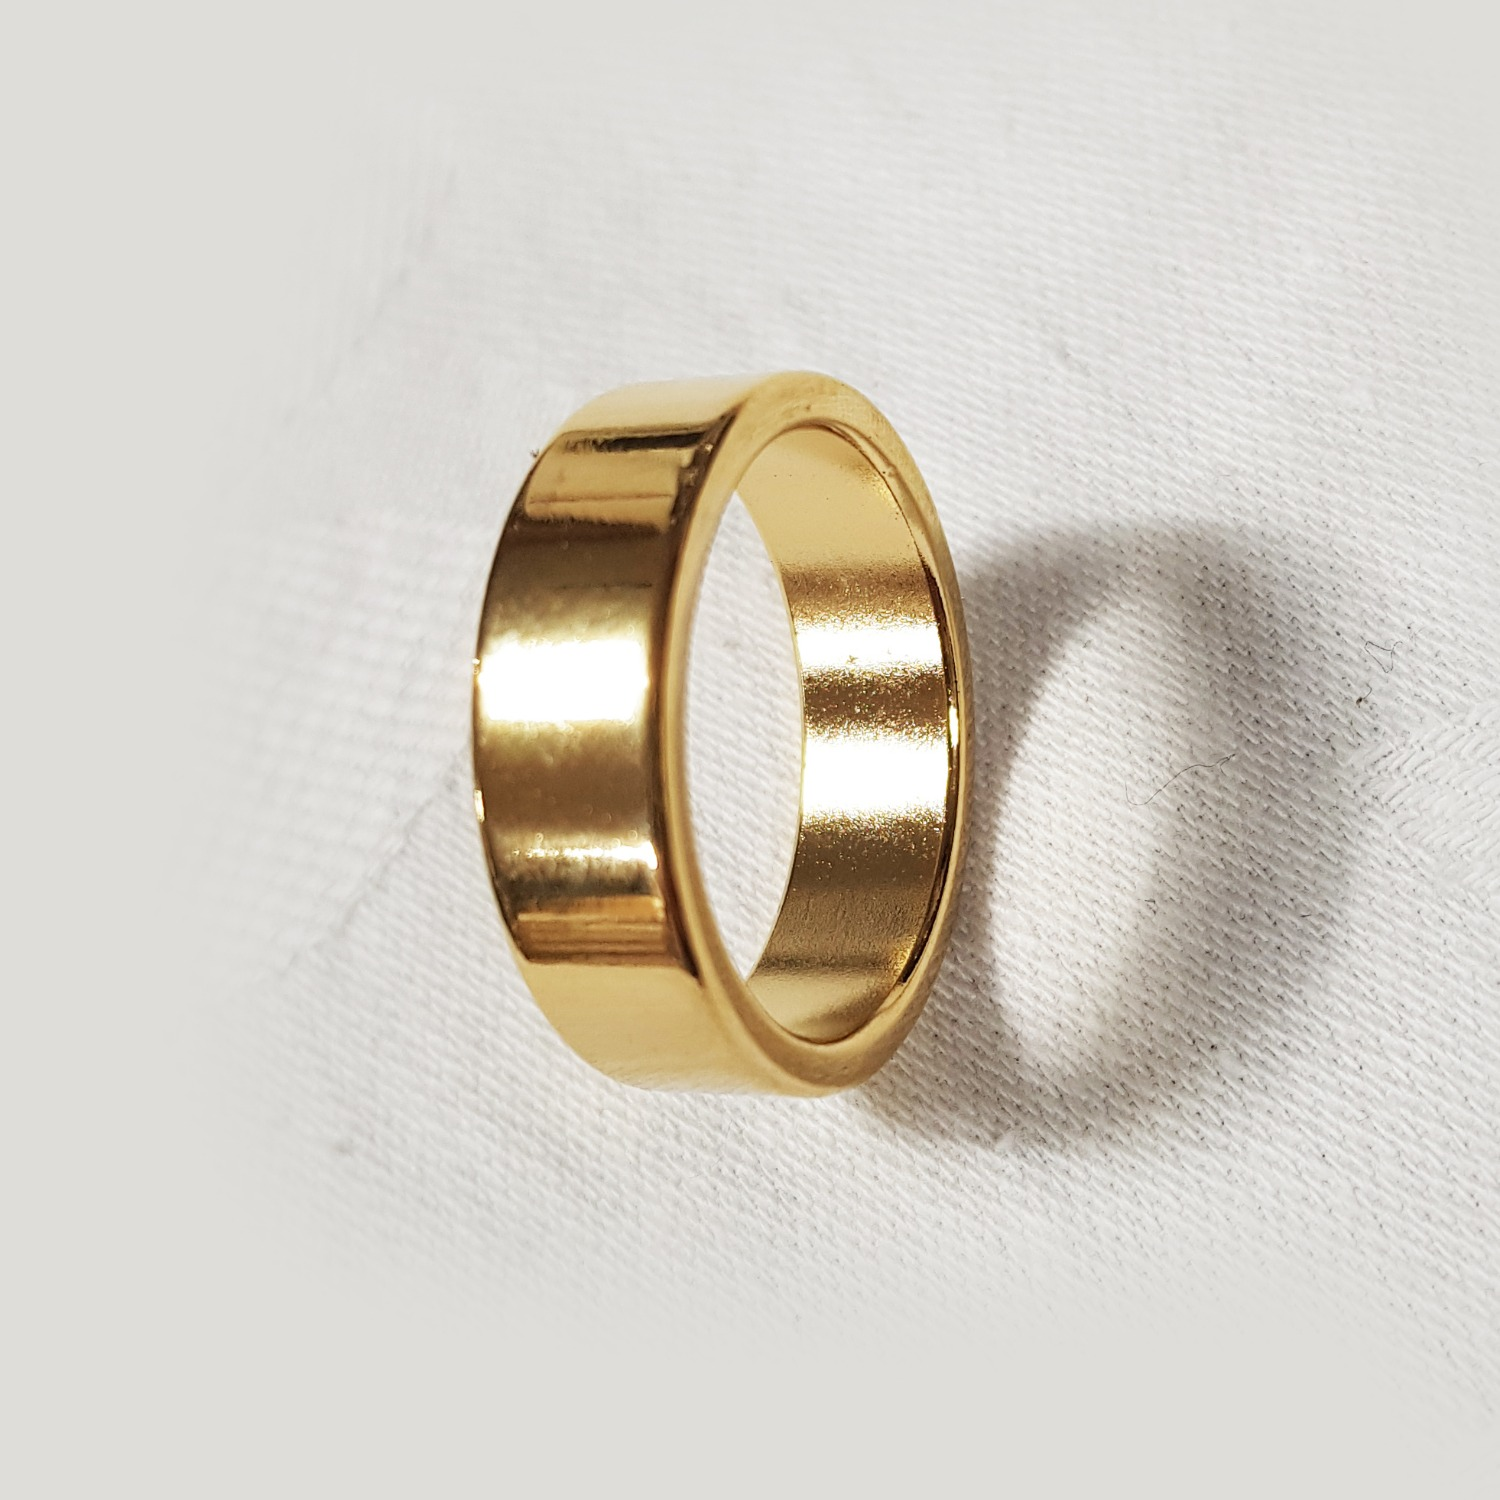 Wedding Band PK Ring Gold[라운드형 자석반지 Gold]